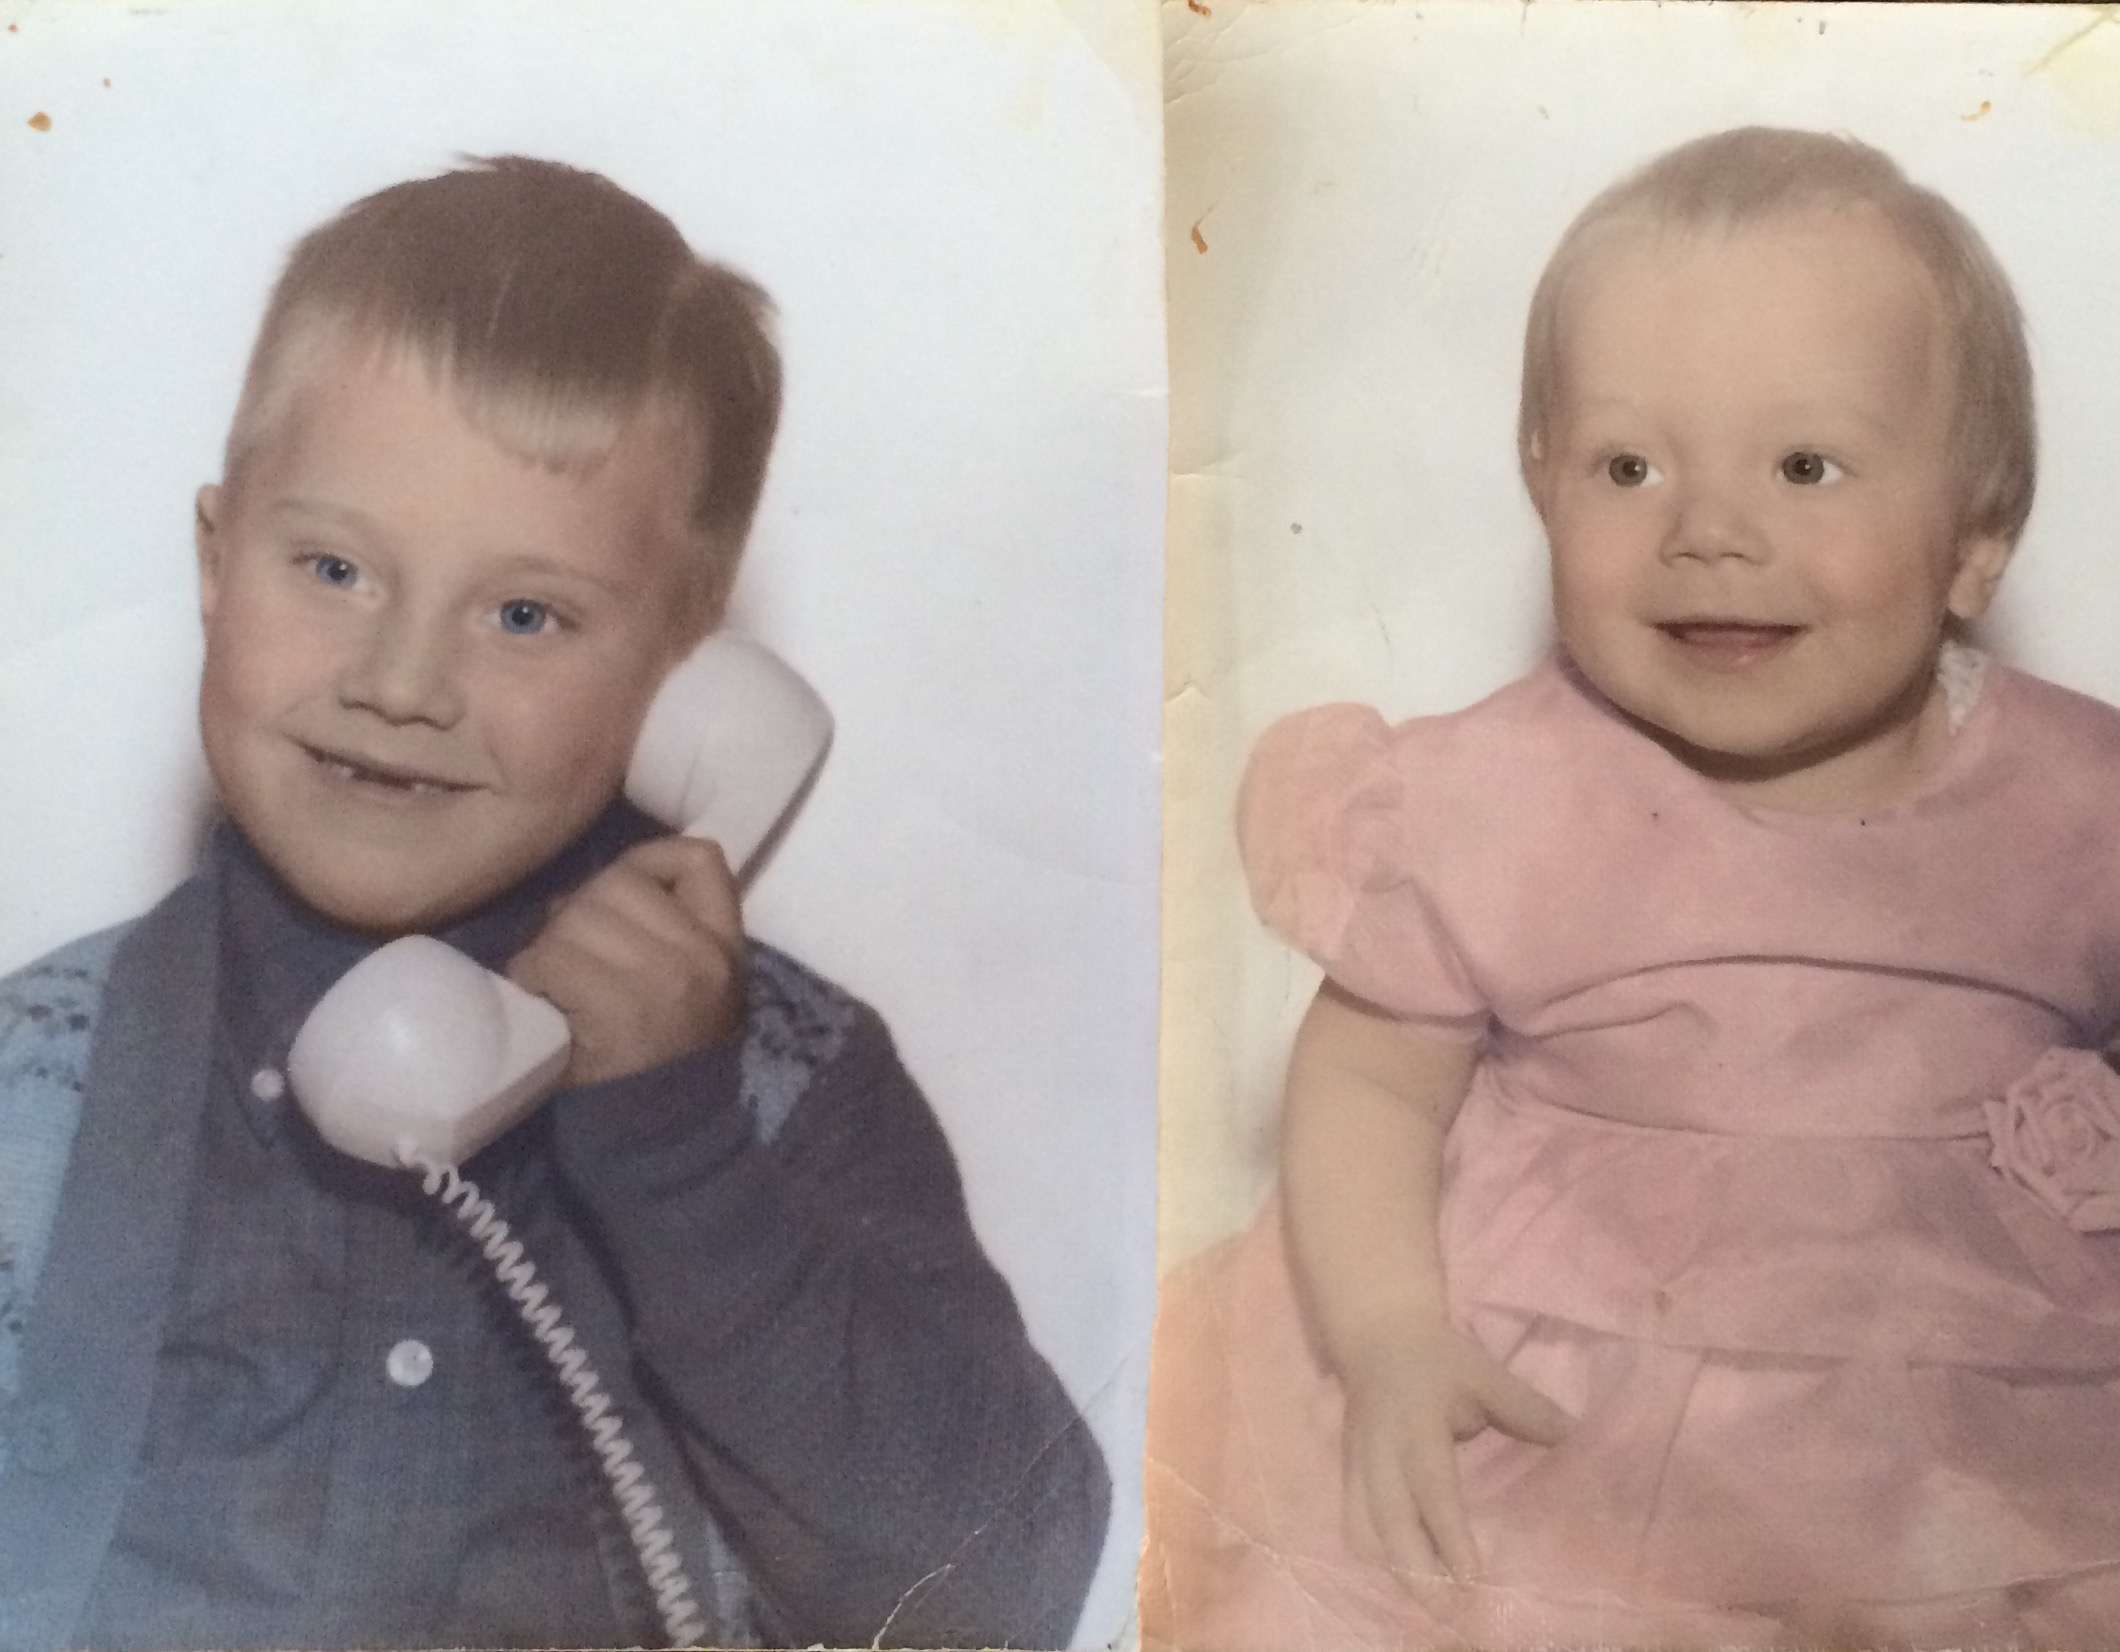 My brother and I over 54 years ago. Sweet memories!